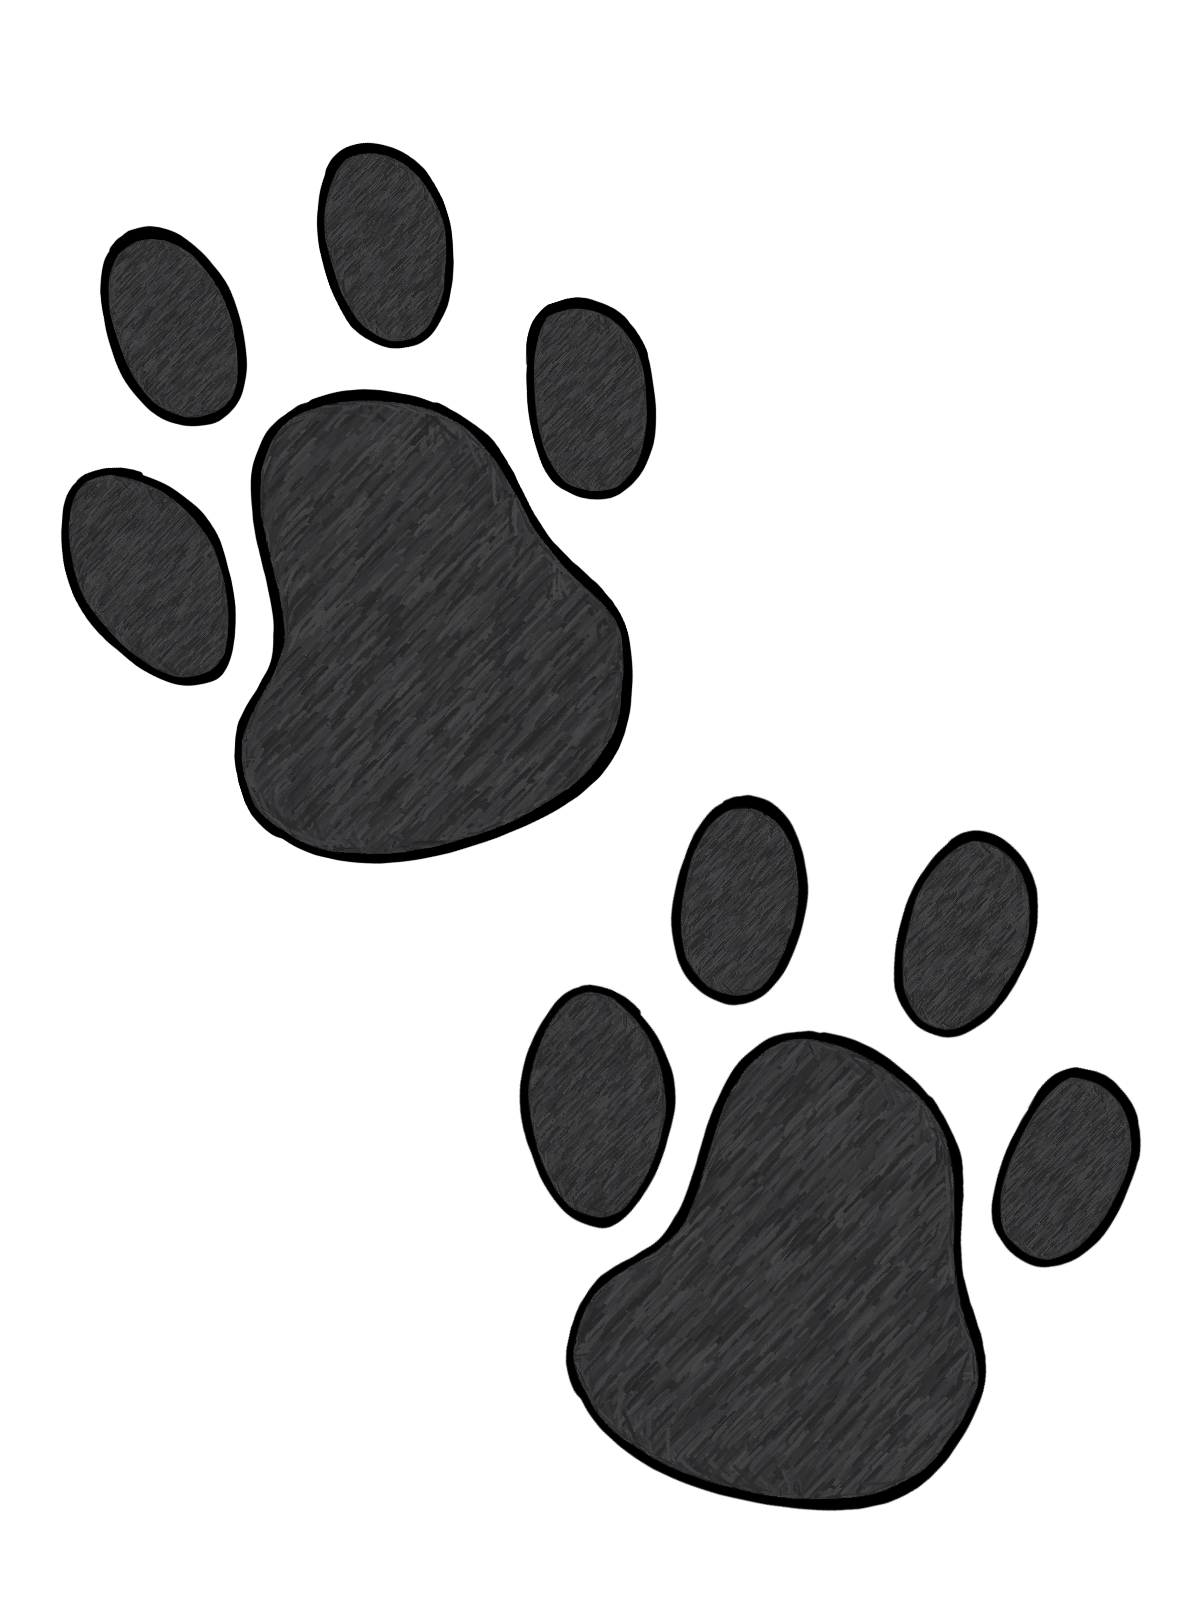 1200x1600 Paw Prints Dog Paw Print Stamps Dog Prints Clip Art 2